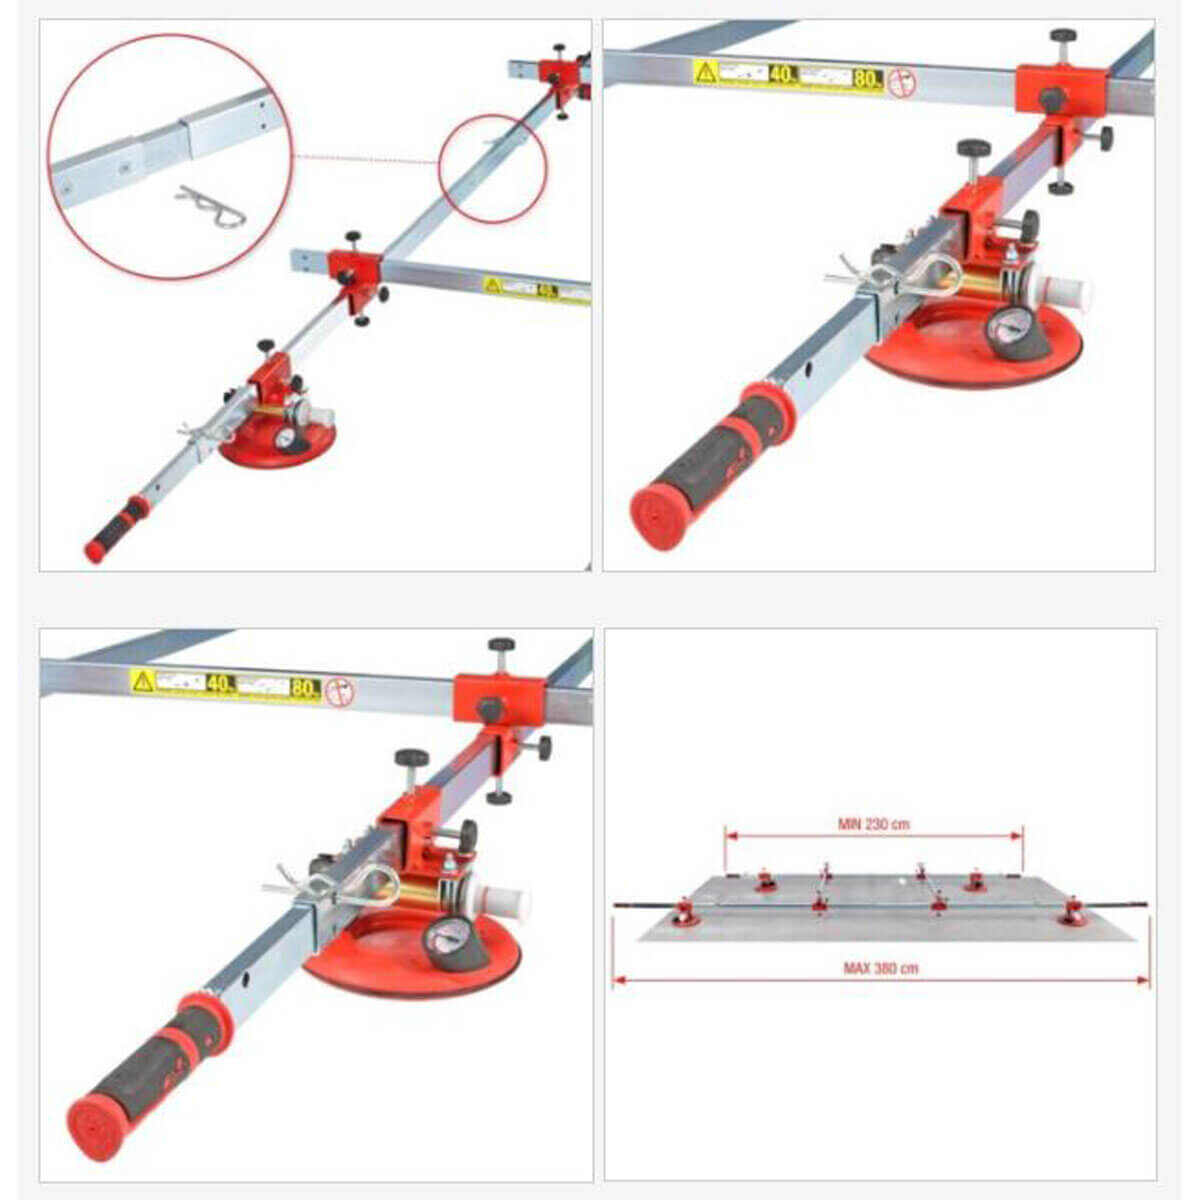 300-70 Montolit SuperStick Telescopic handles for a much more ergonomic grip and comfort suction cups are equipped with a vacuum safety gauge to indicate the force of suction before moving